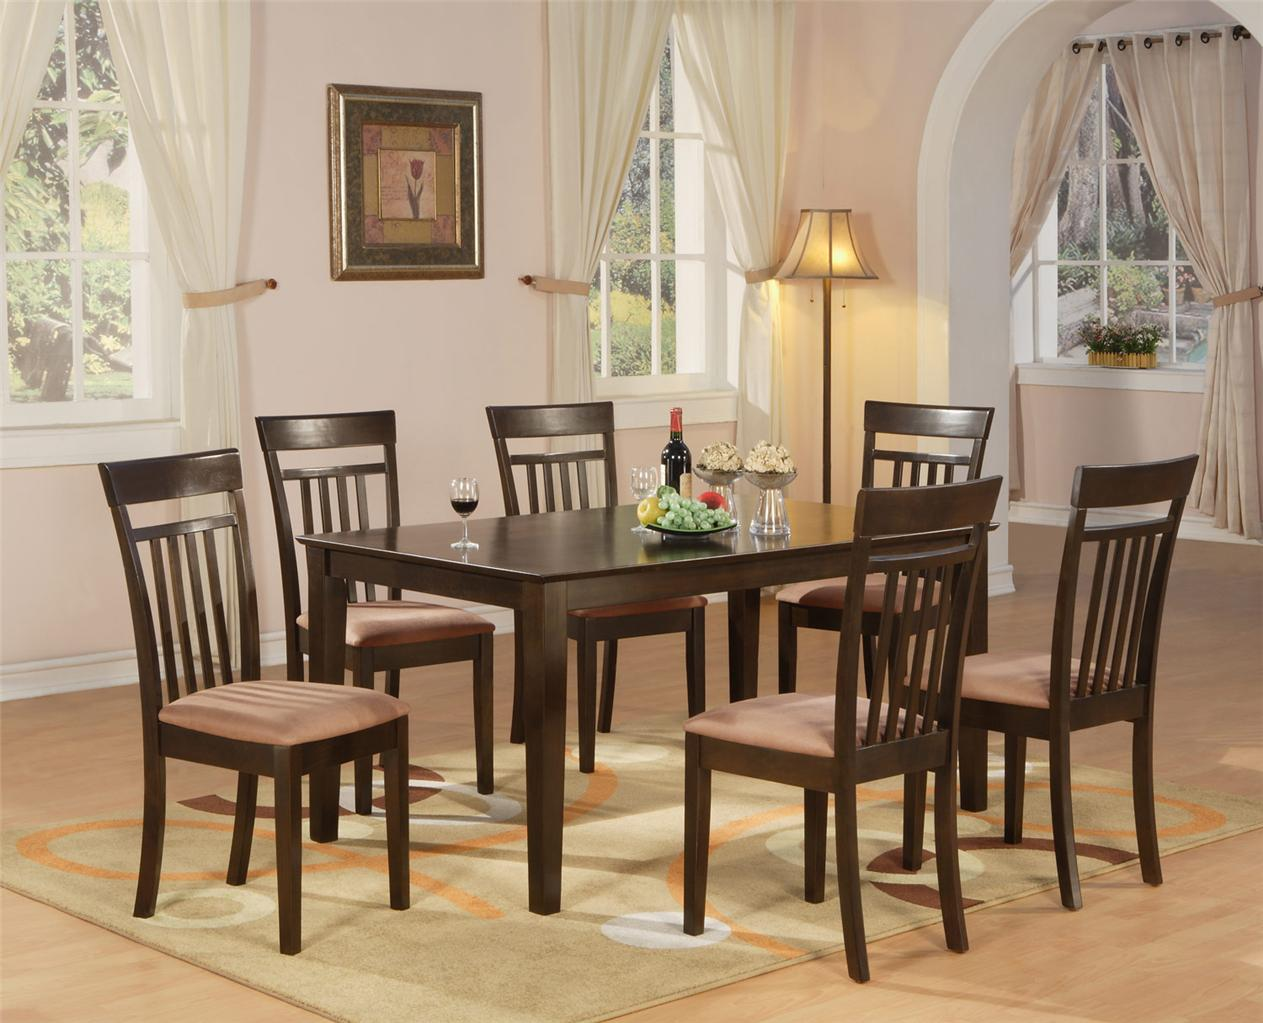 7 pc dining room dinette kitchen set table and 6 chairs ebay for Kitchen table and chairs set